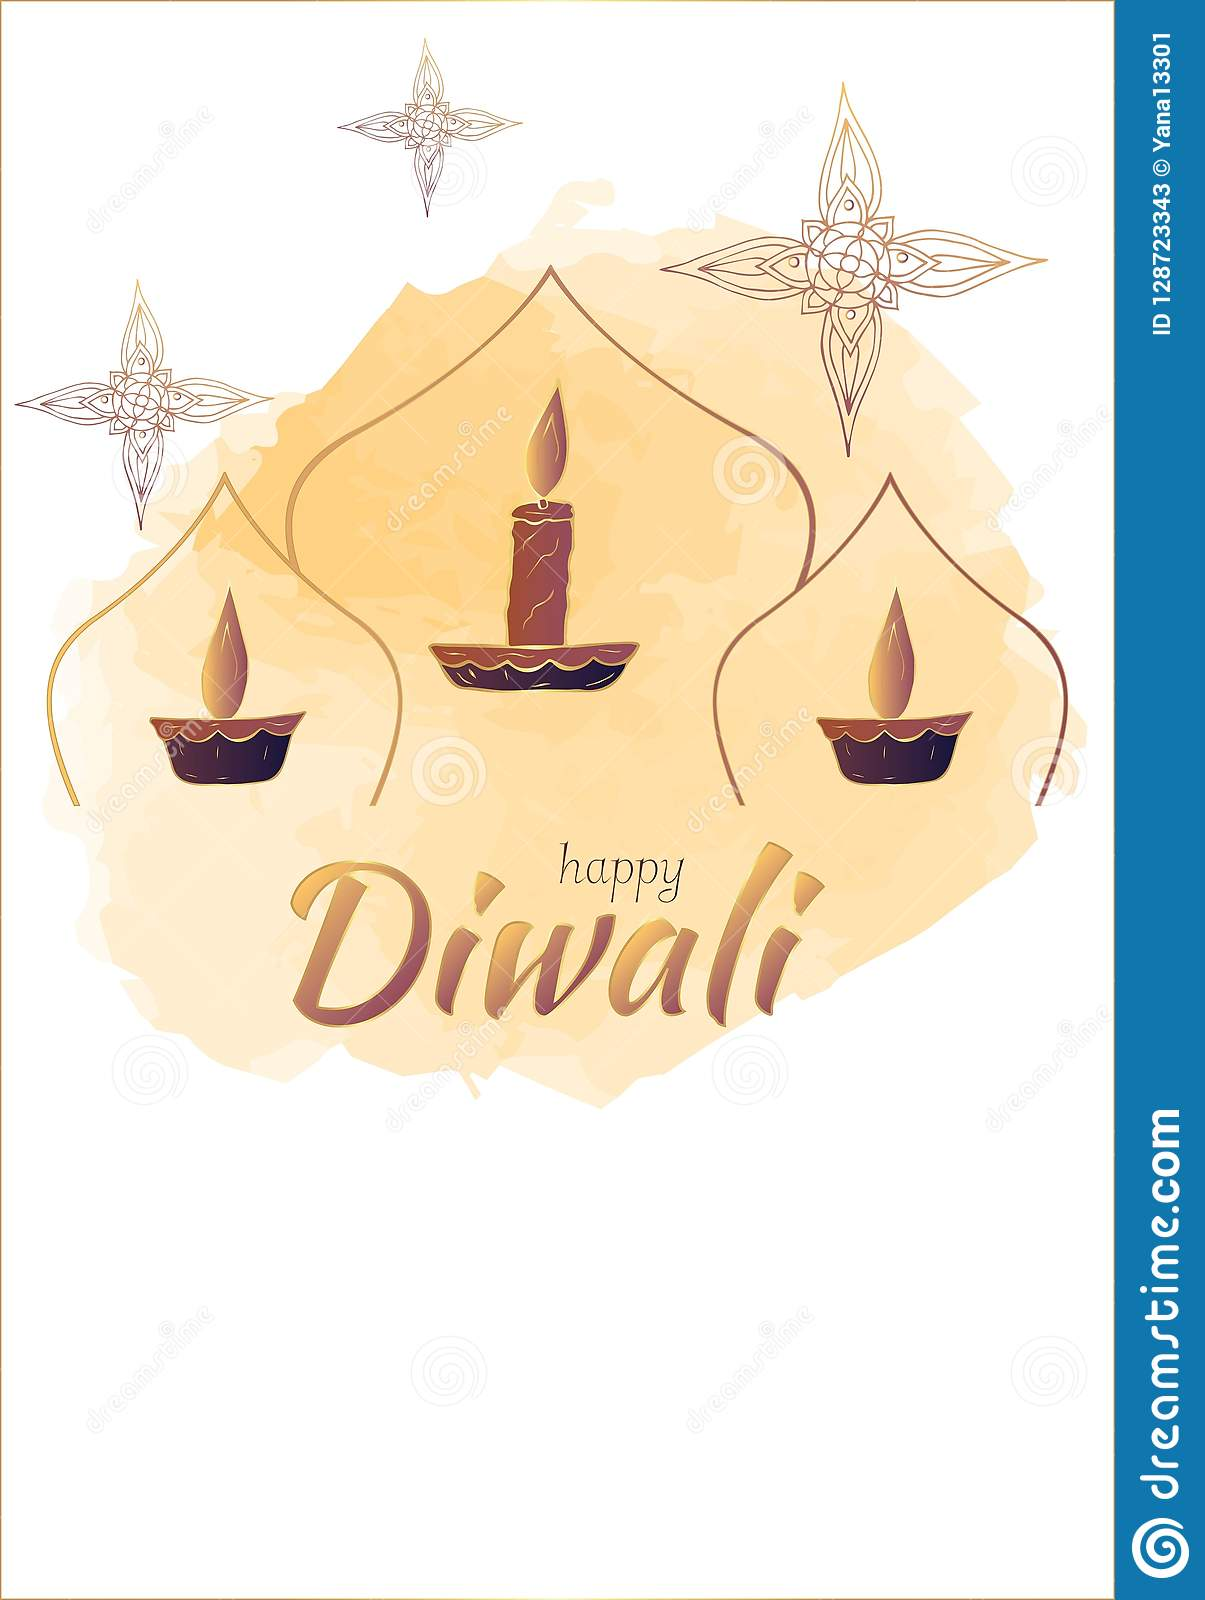 Happy diwali template for postcards stock vector illustration of happy diwali template for postcards m4hsunfo